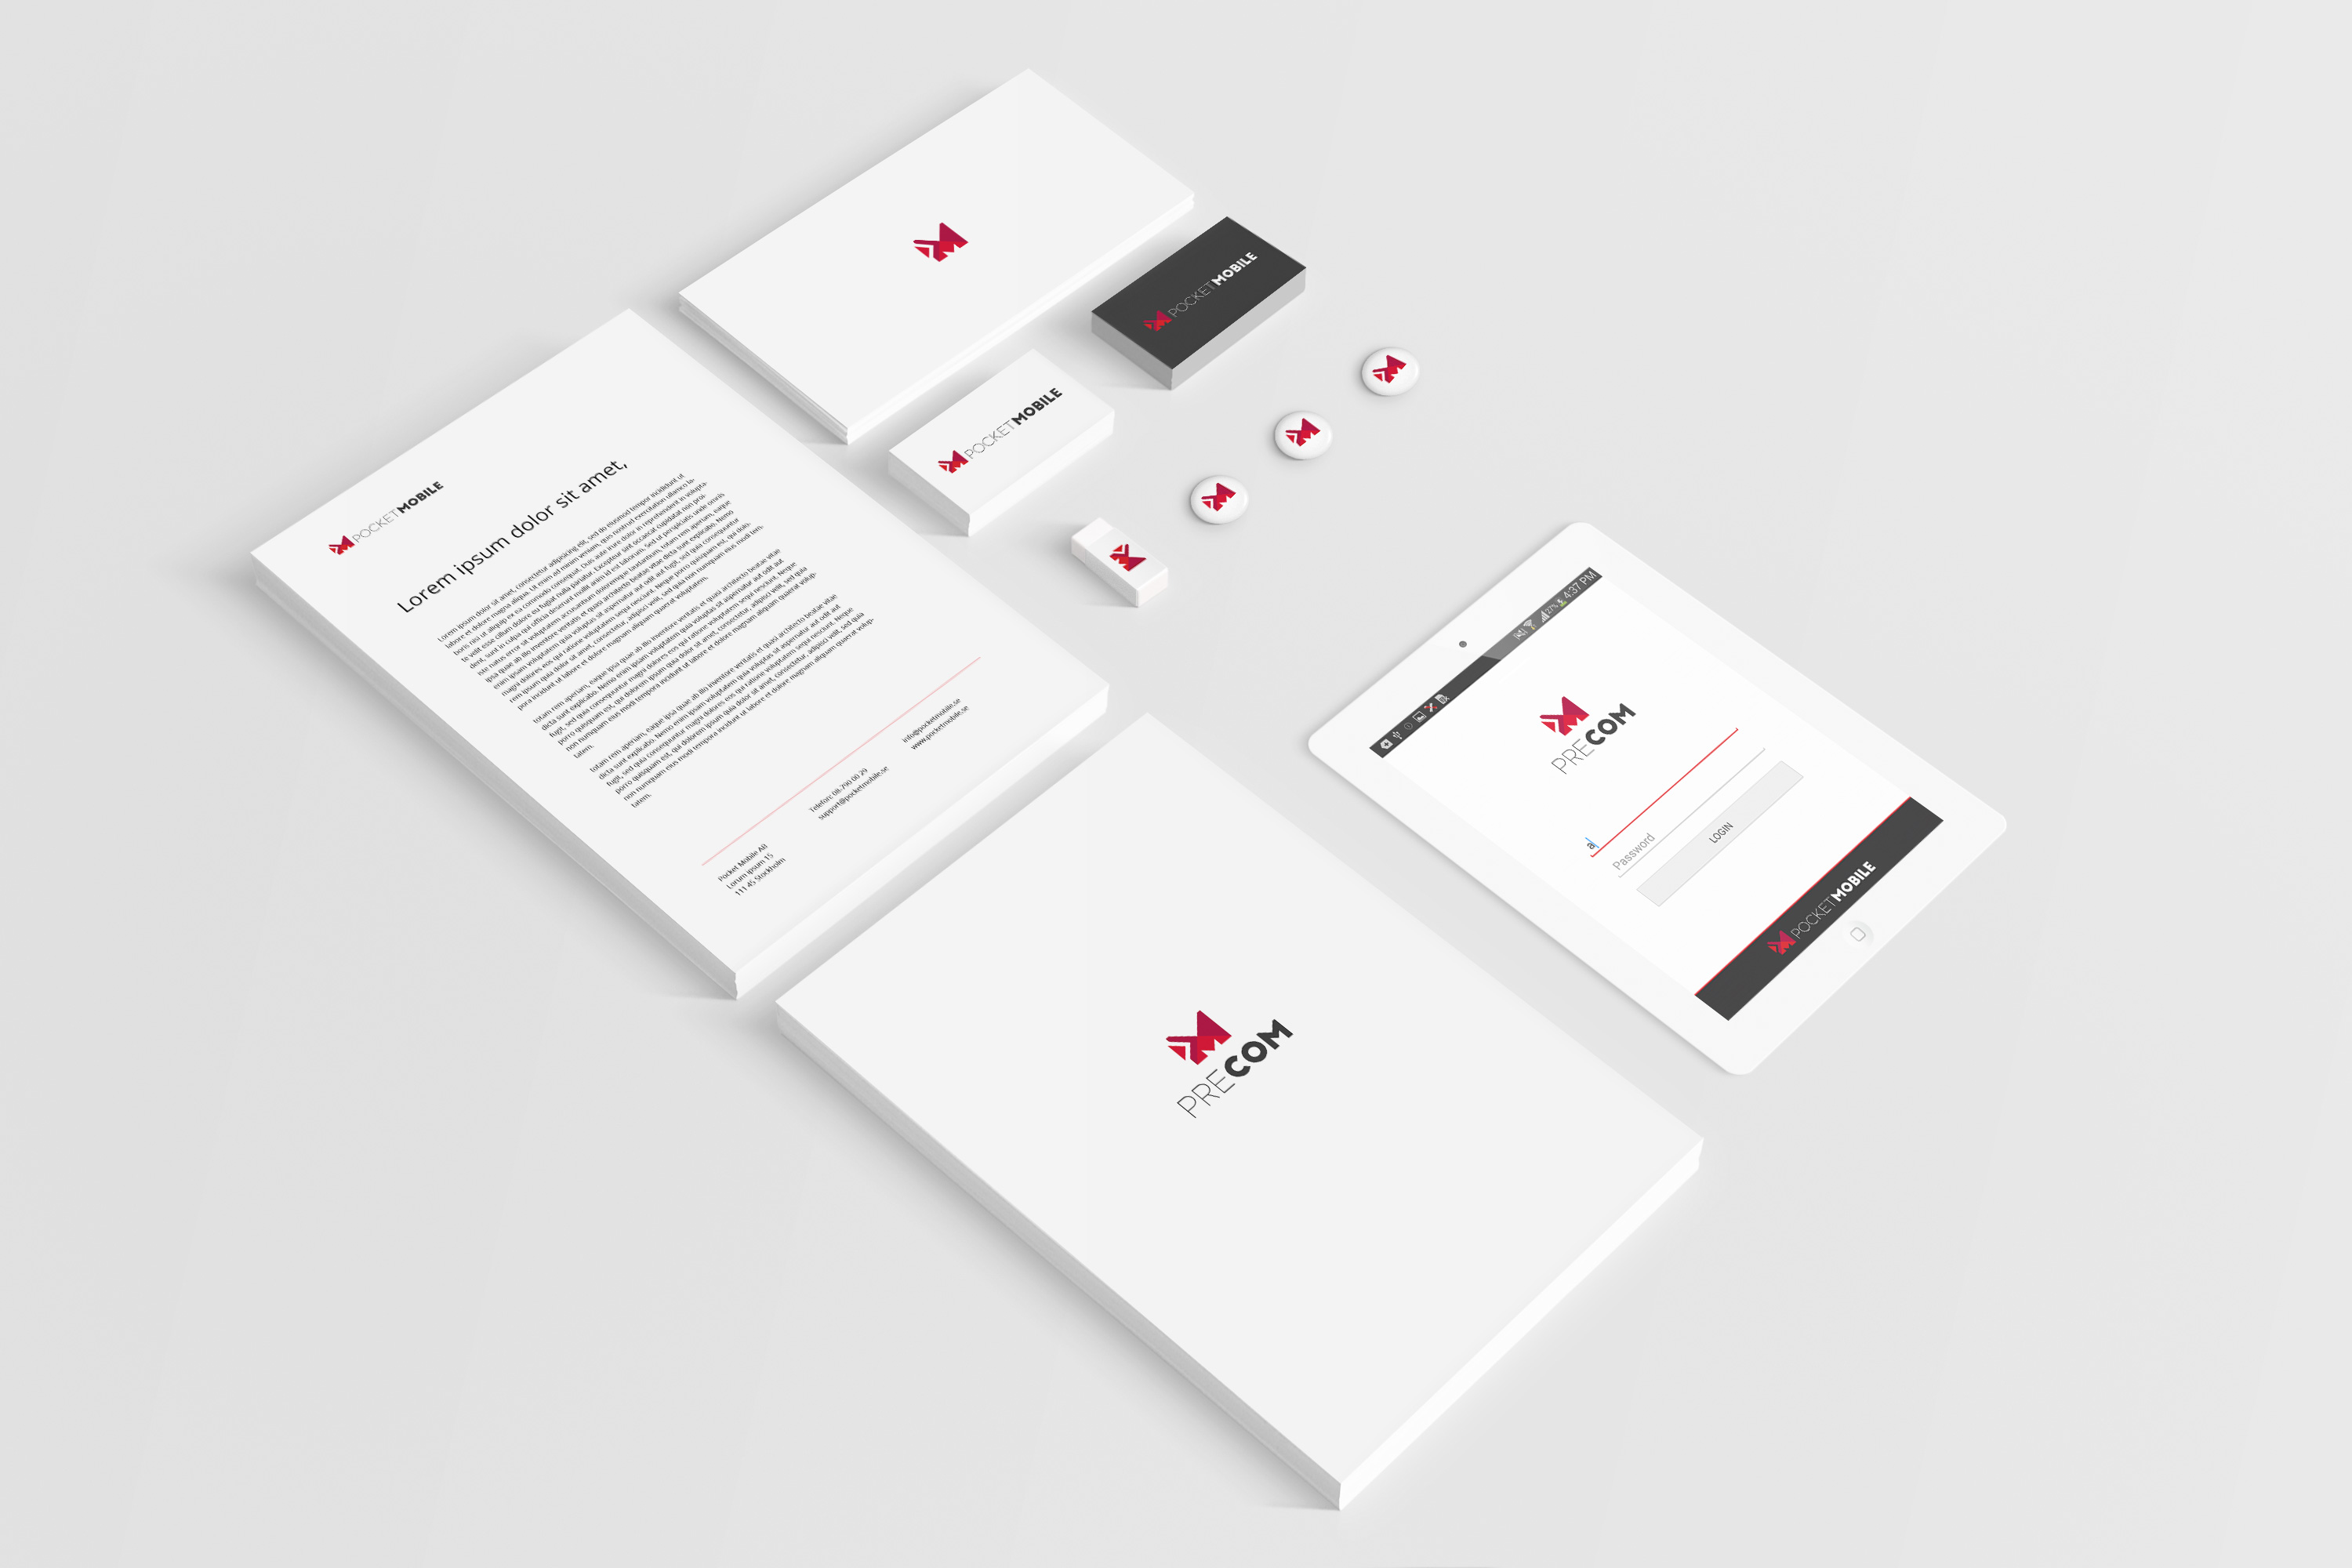 Mockup-Pocket_mobile9